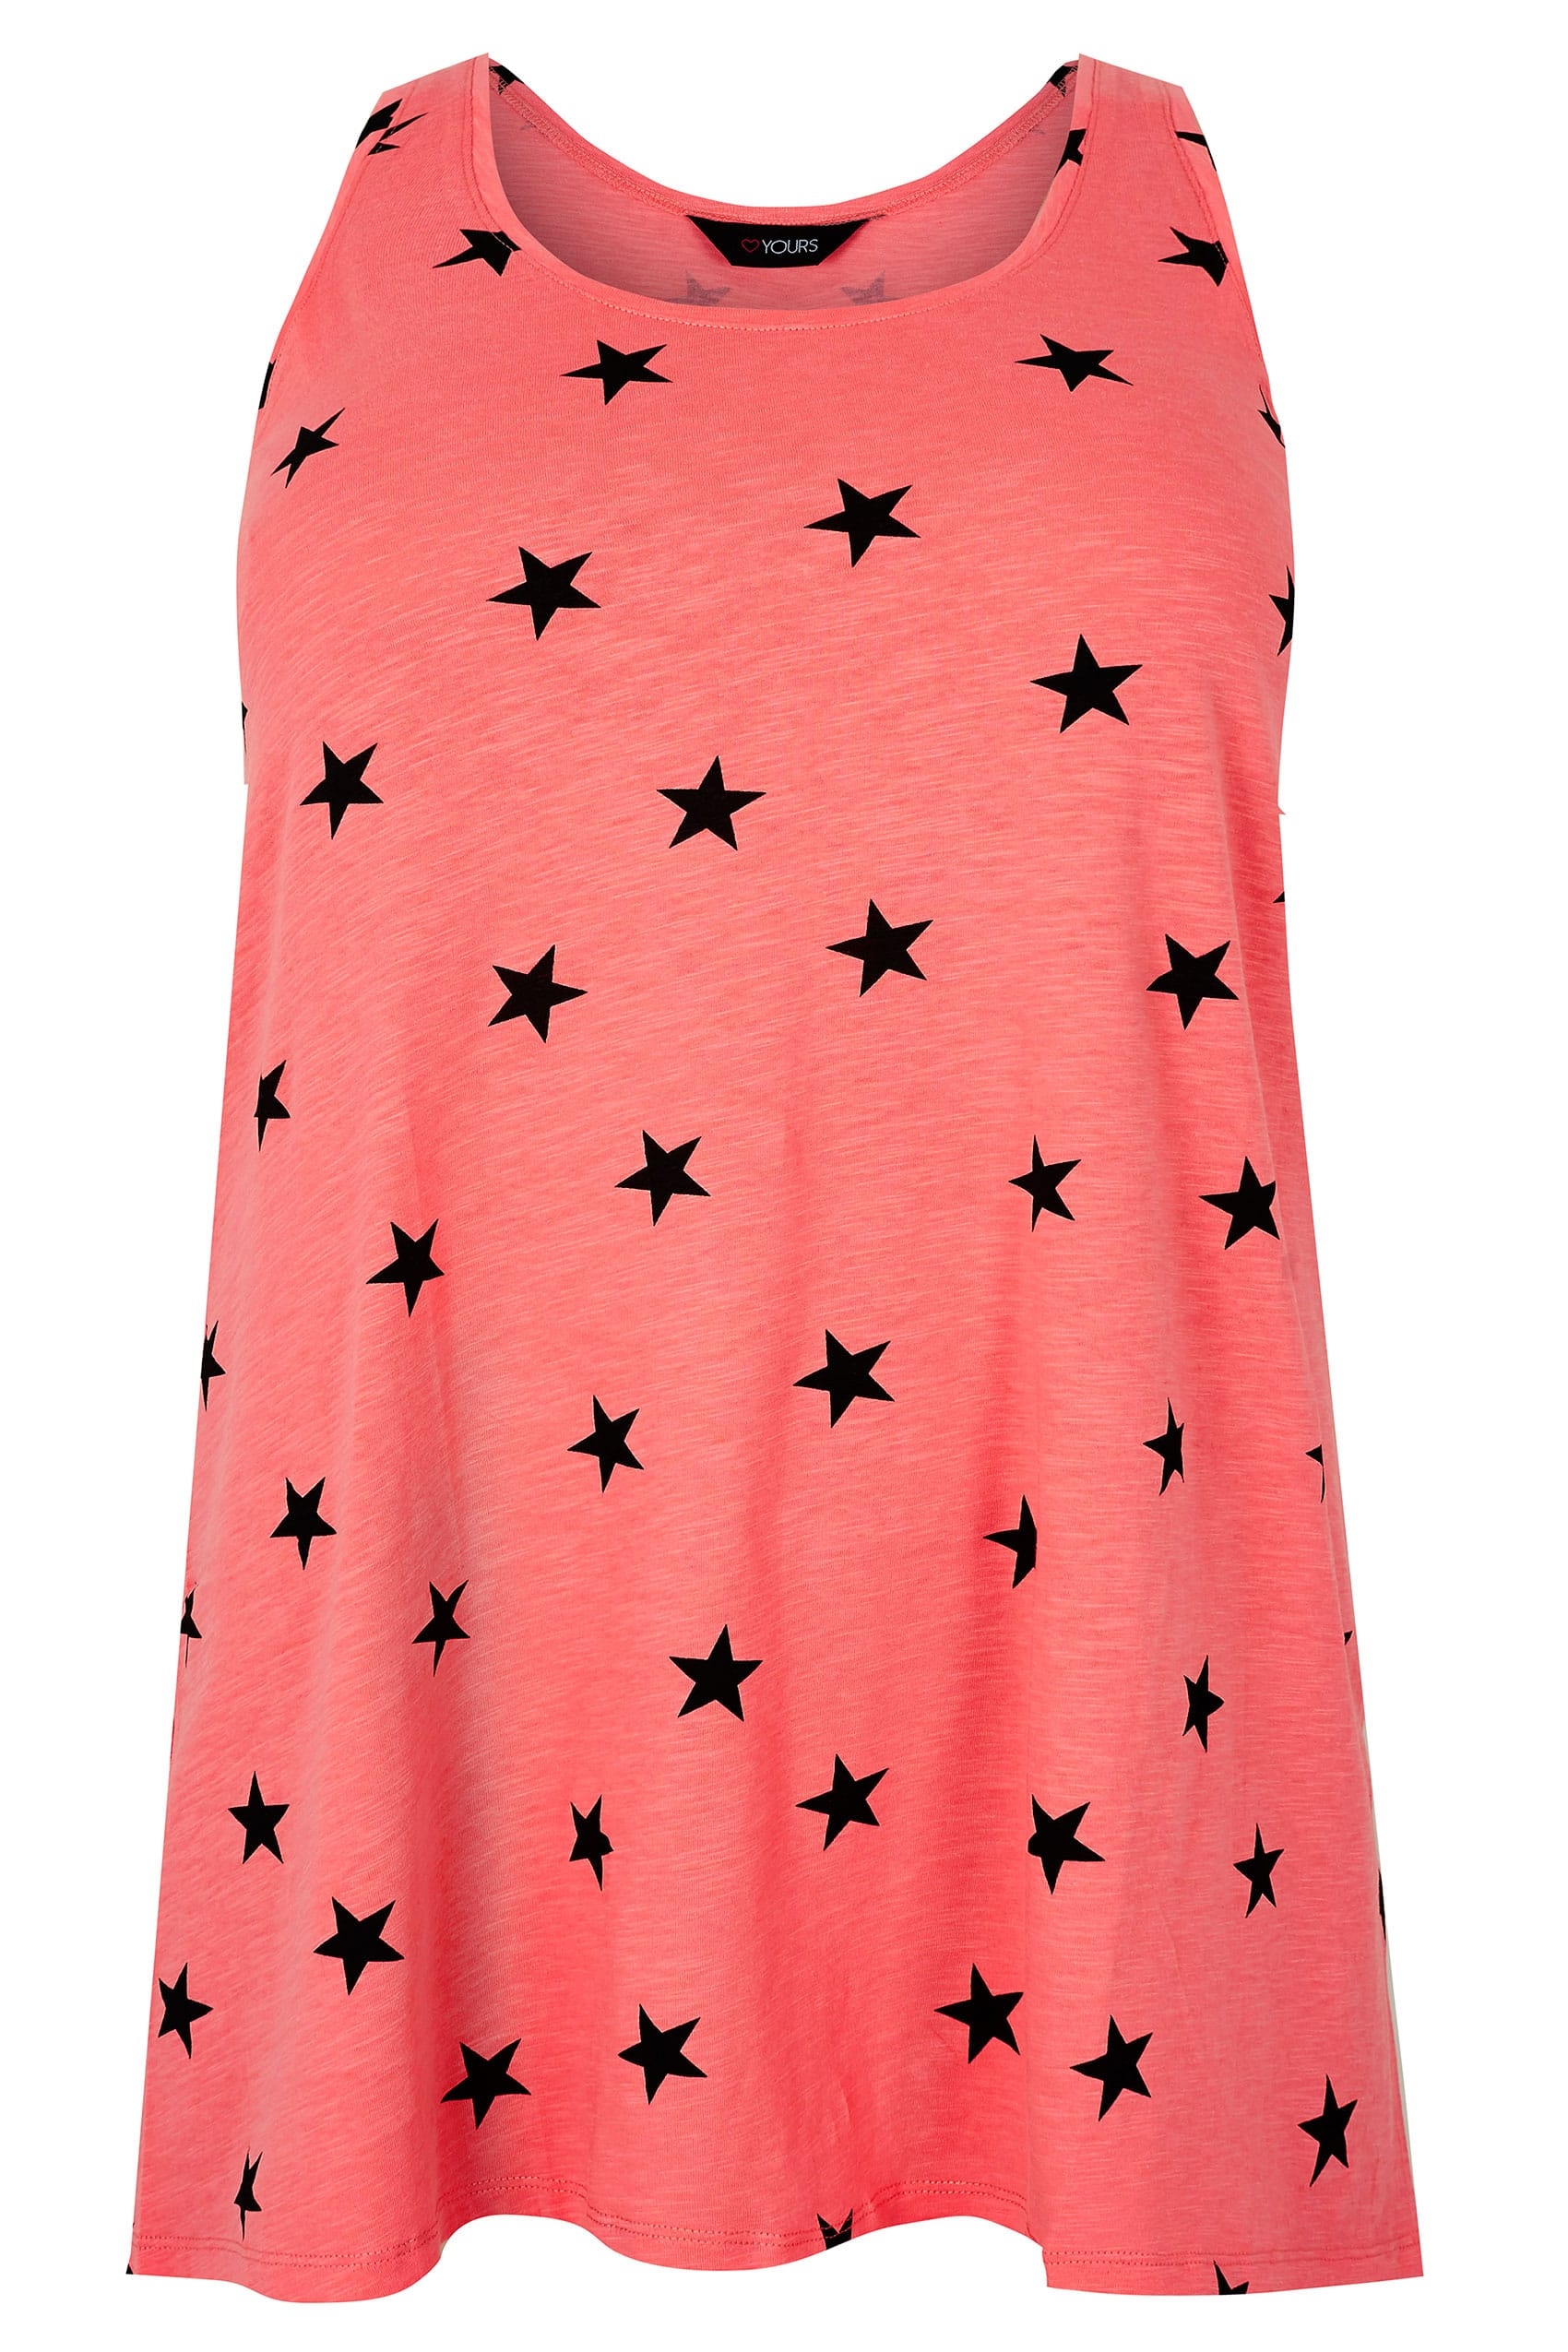 Pink black star print swing vest top plus size 16 to 36 for Vest top template